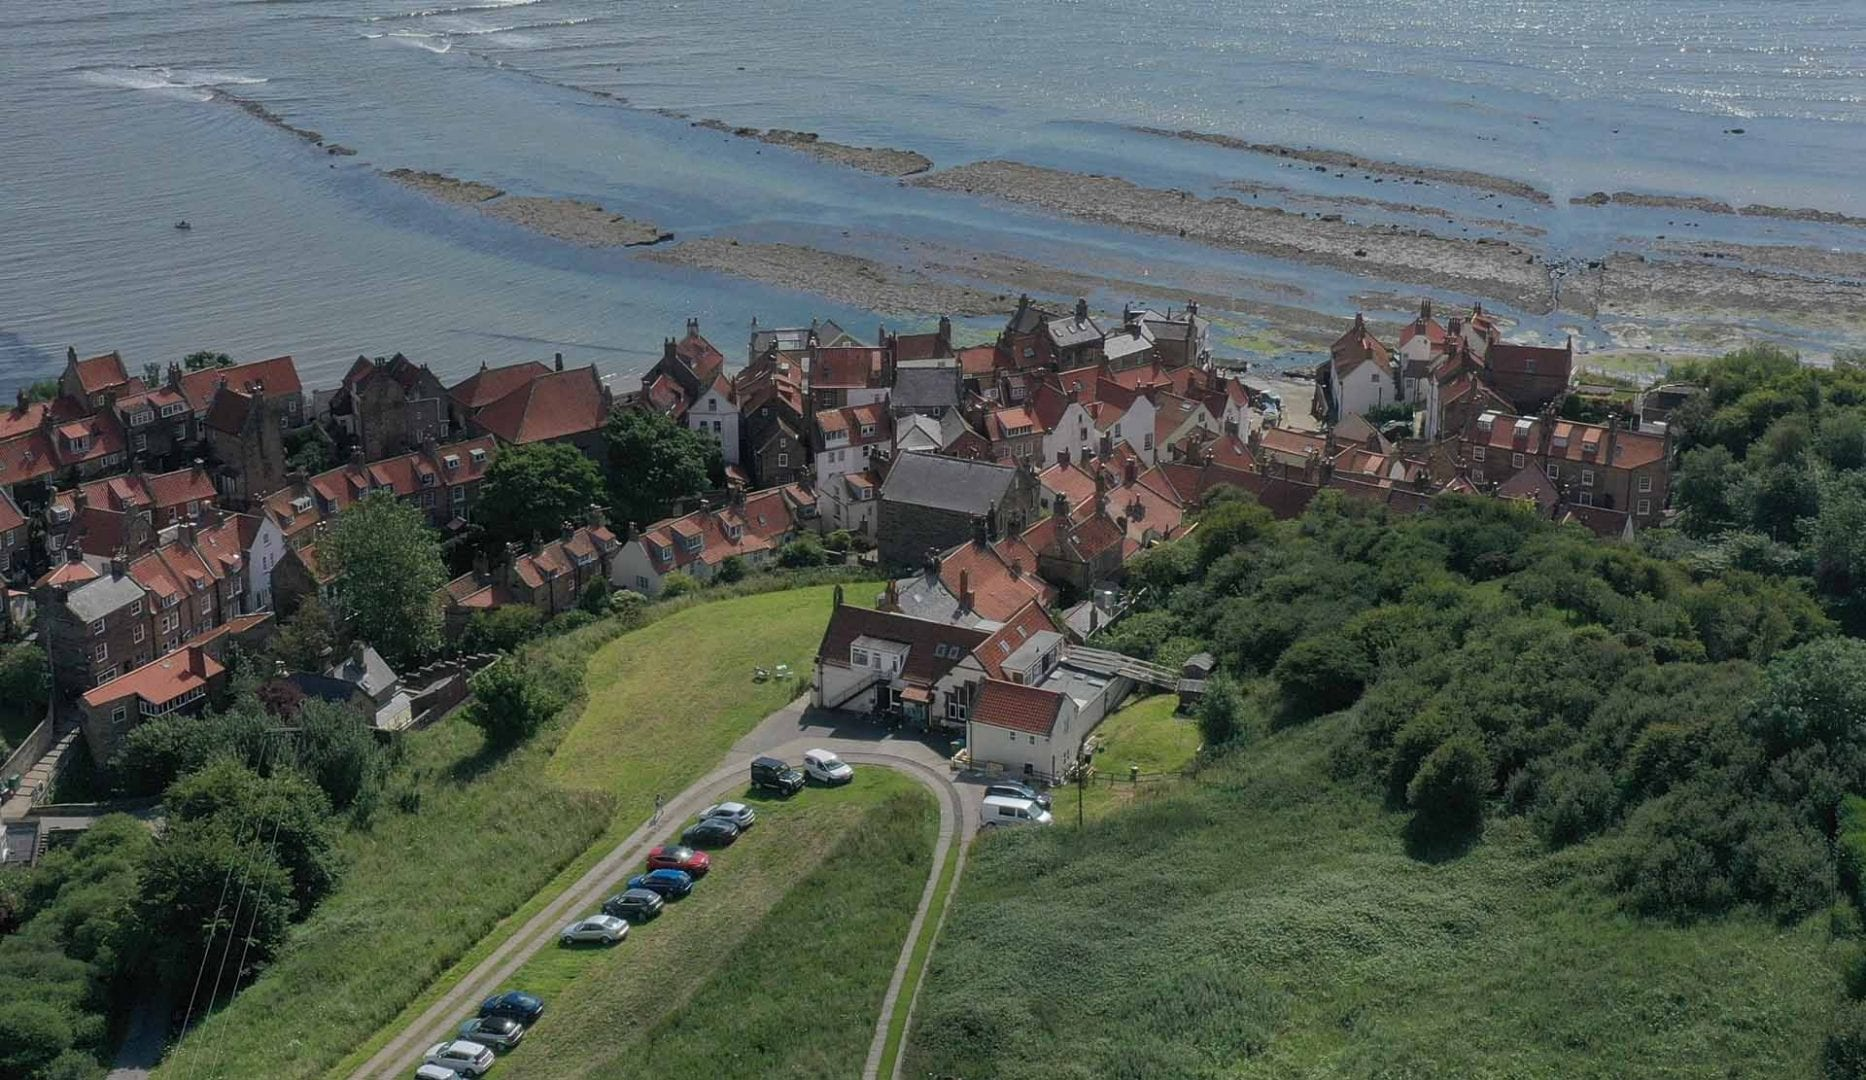 The Old School House Robin Hood's Bay Ariel view